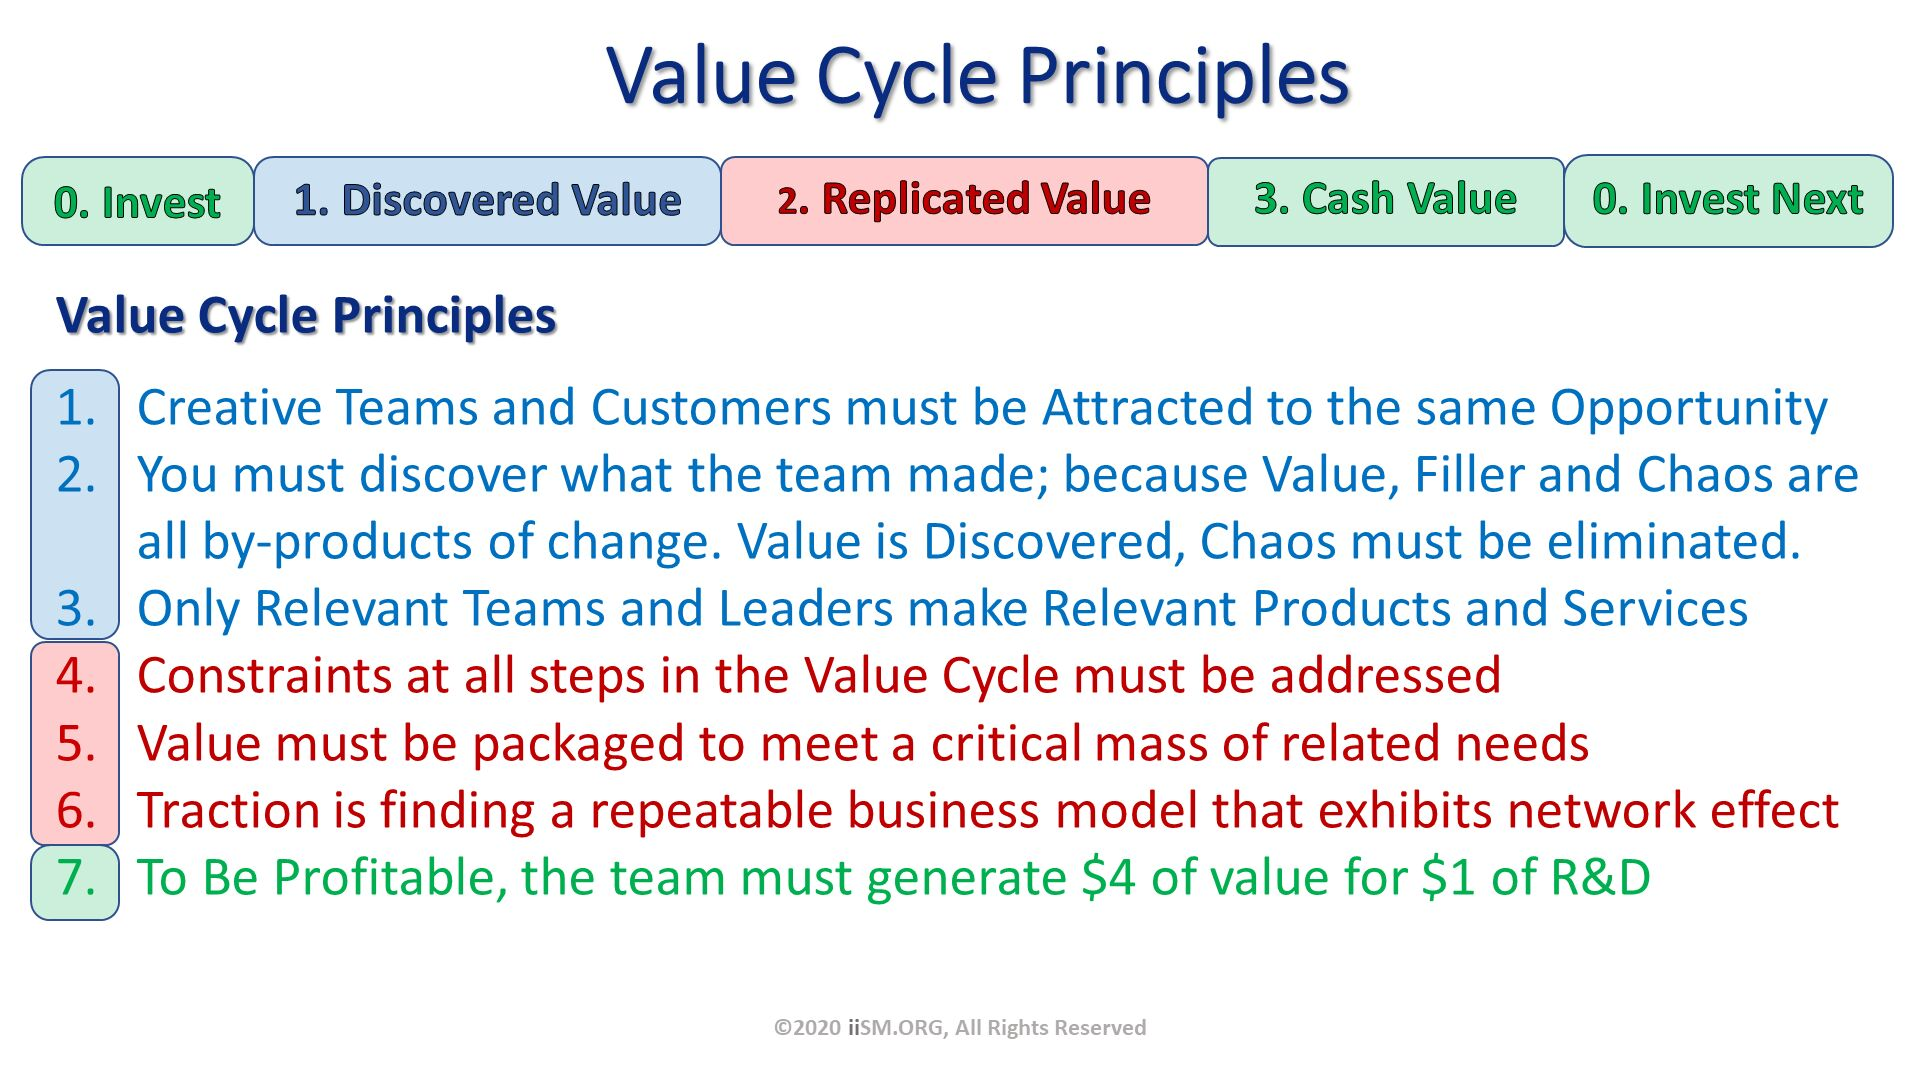 Value Cycle Principles. Value Cycle Principles Creative Teams and Customers must be Attracted to the same Opportunity You must discover what the team made; because Value, Filler and Chaos are all by-products of change. Value is Discovered, Chaos must be eliminated. Only Relevant Teams and Leaders make Relevant Products and Services Constraints at all steps in the Value Cycle must be addressed Value must be packaged to meet a critical mass of related needs Traction is finding a repeatable business model that exhibits network effect To Be Profitable, the team must generate $4 of value for $1 of R&D. ©2020 iiSM.ORG, All Rights Reserved.